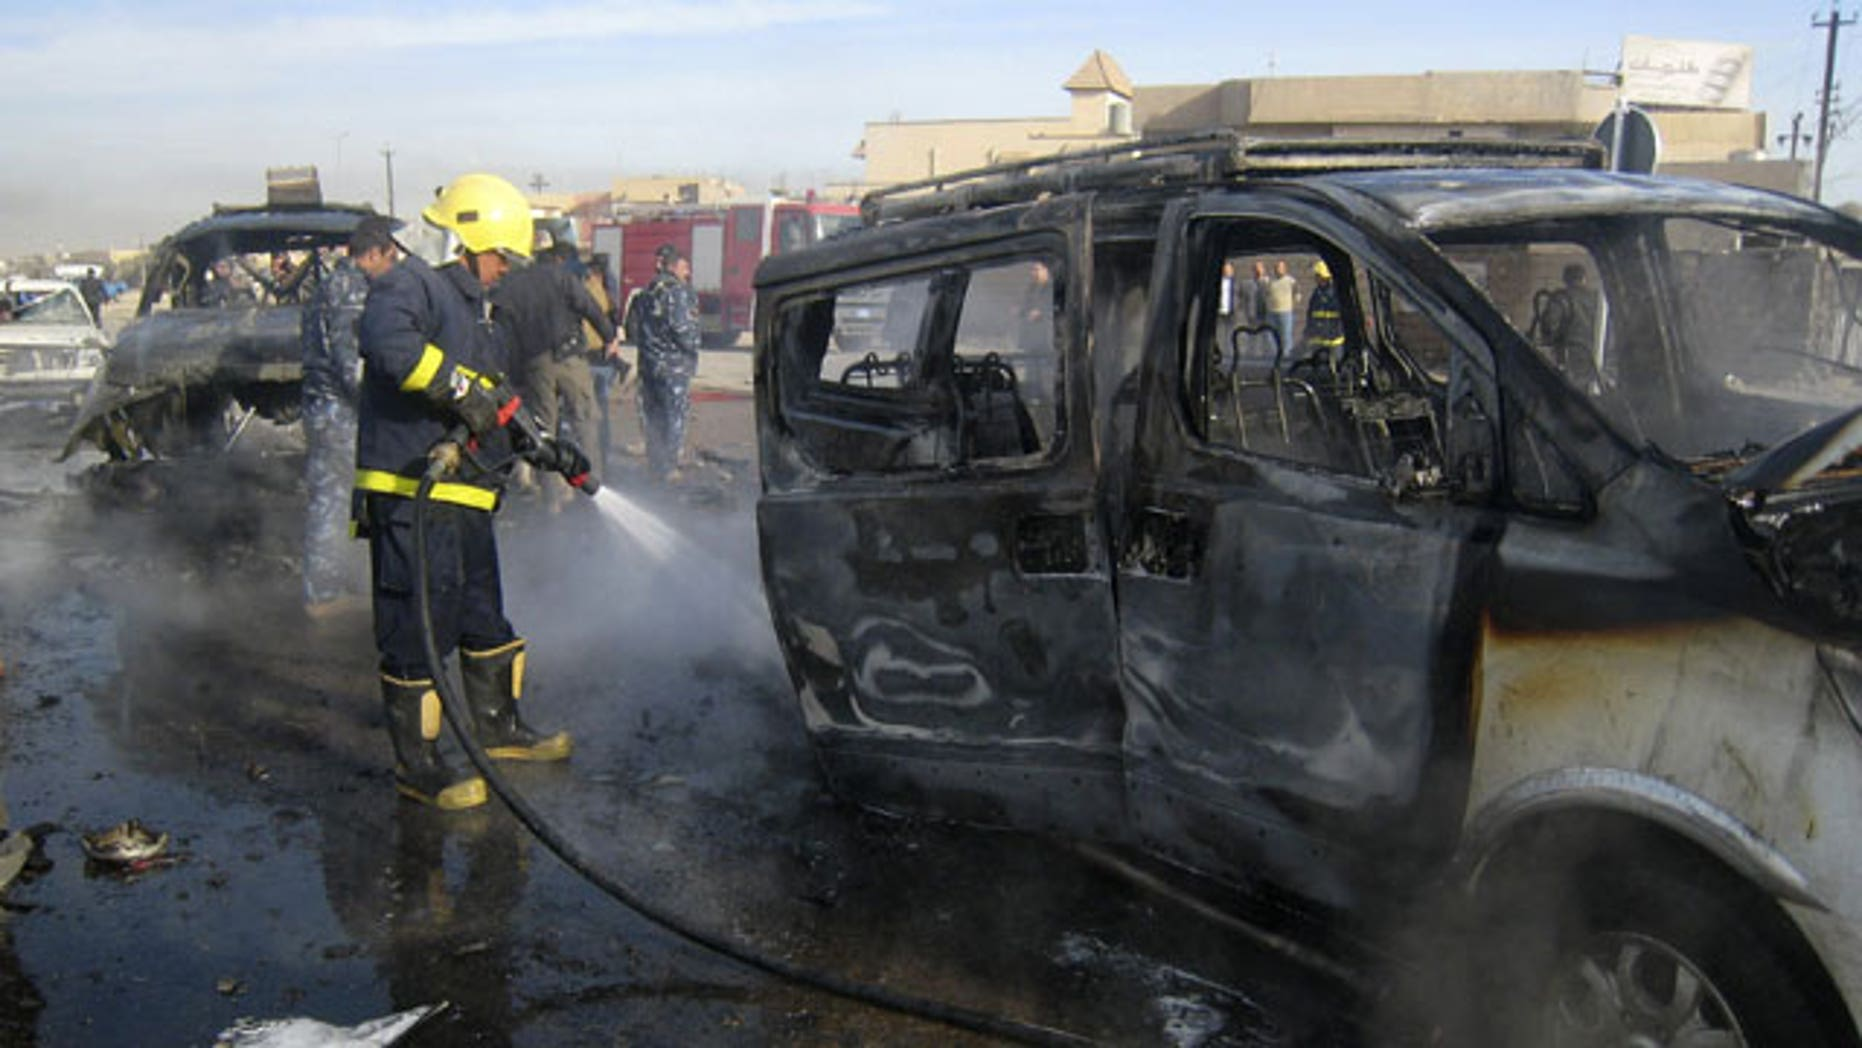 Feb. 23, 2012: An Iraqi firefighter hoses down a burned bus after a car bomb attack in Kirkuk, 290 kilometers (180 miles) north of Baghdad, Iraq. A rapid series of attacks spread over a wide swath of Iraqi territory killed and injured dozens of Iraqis on Thursday, targeting mostly security forces.